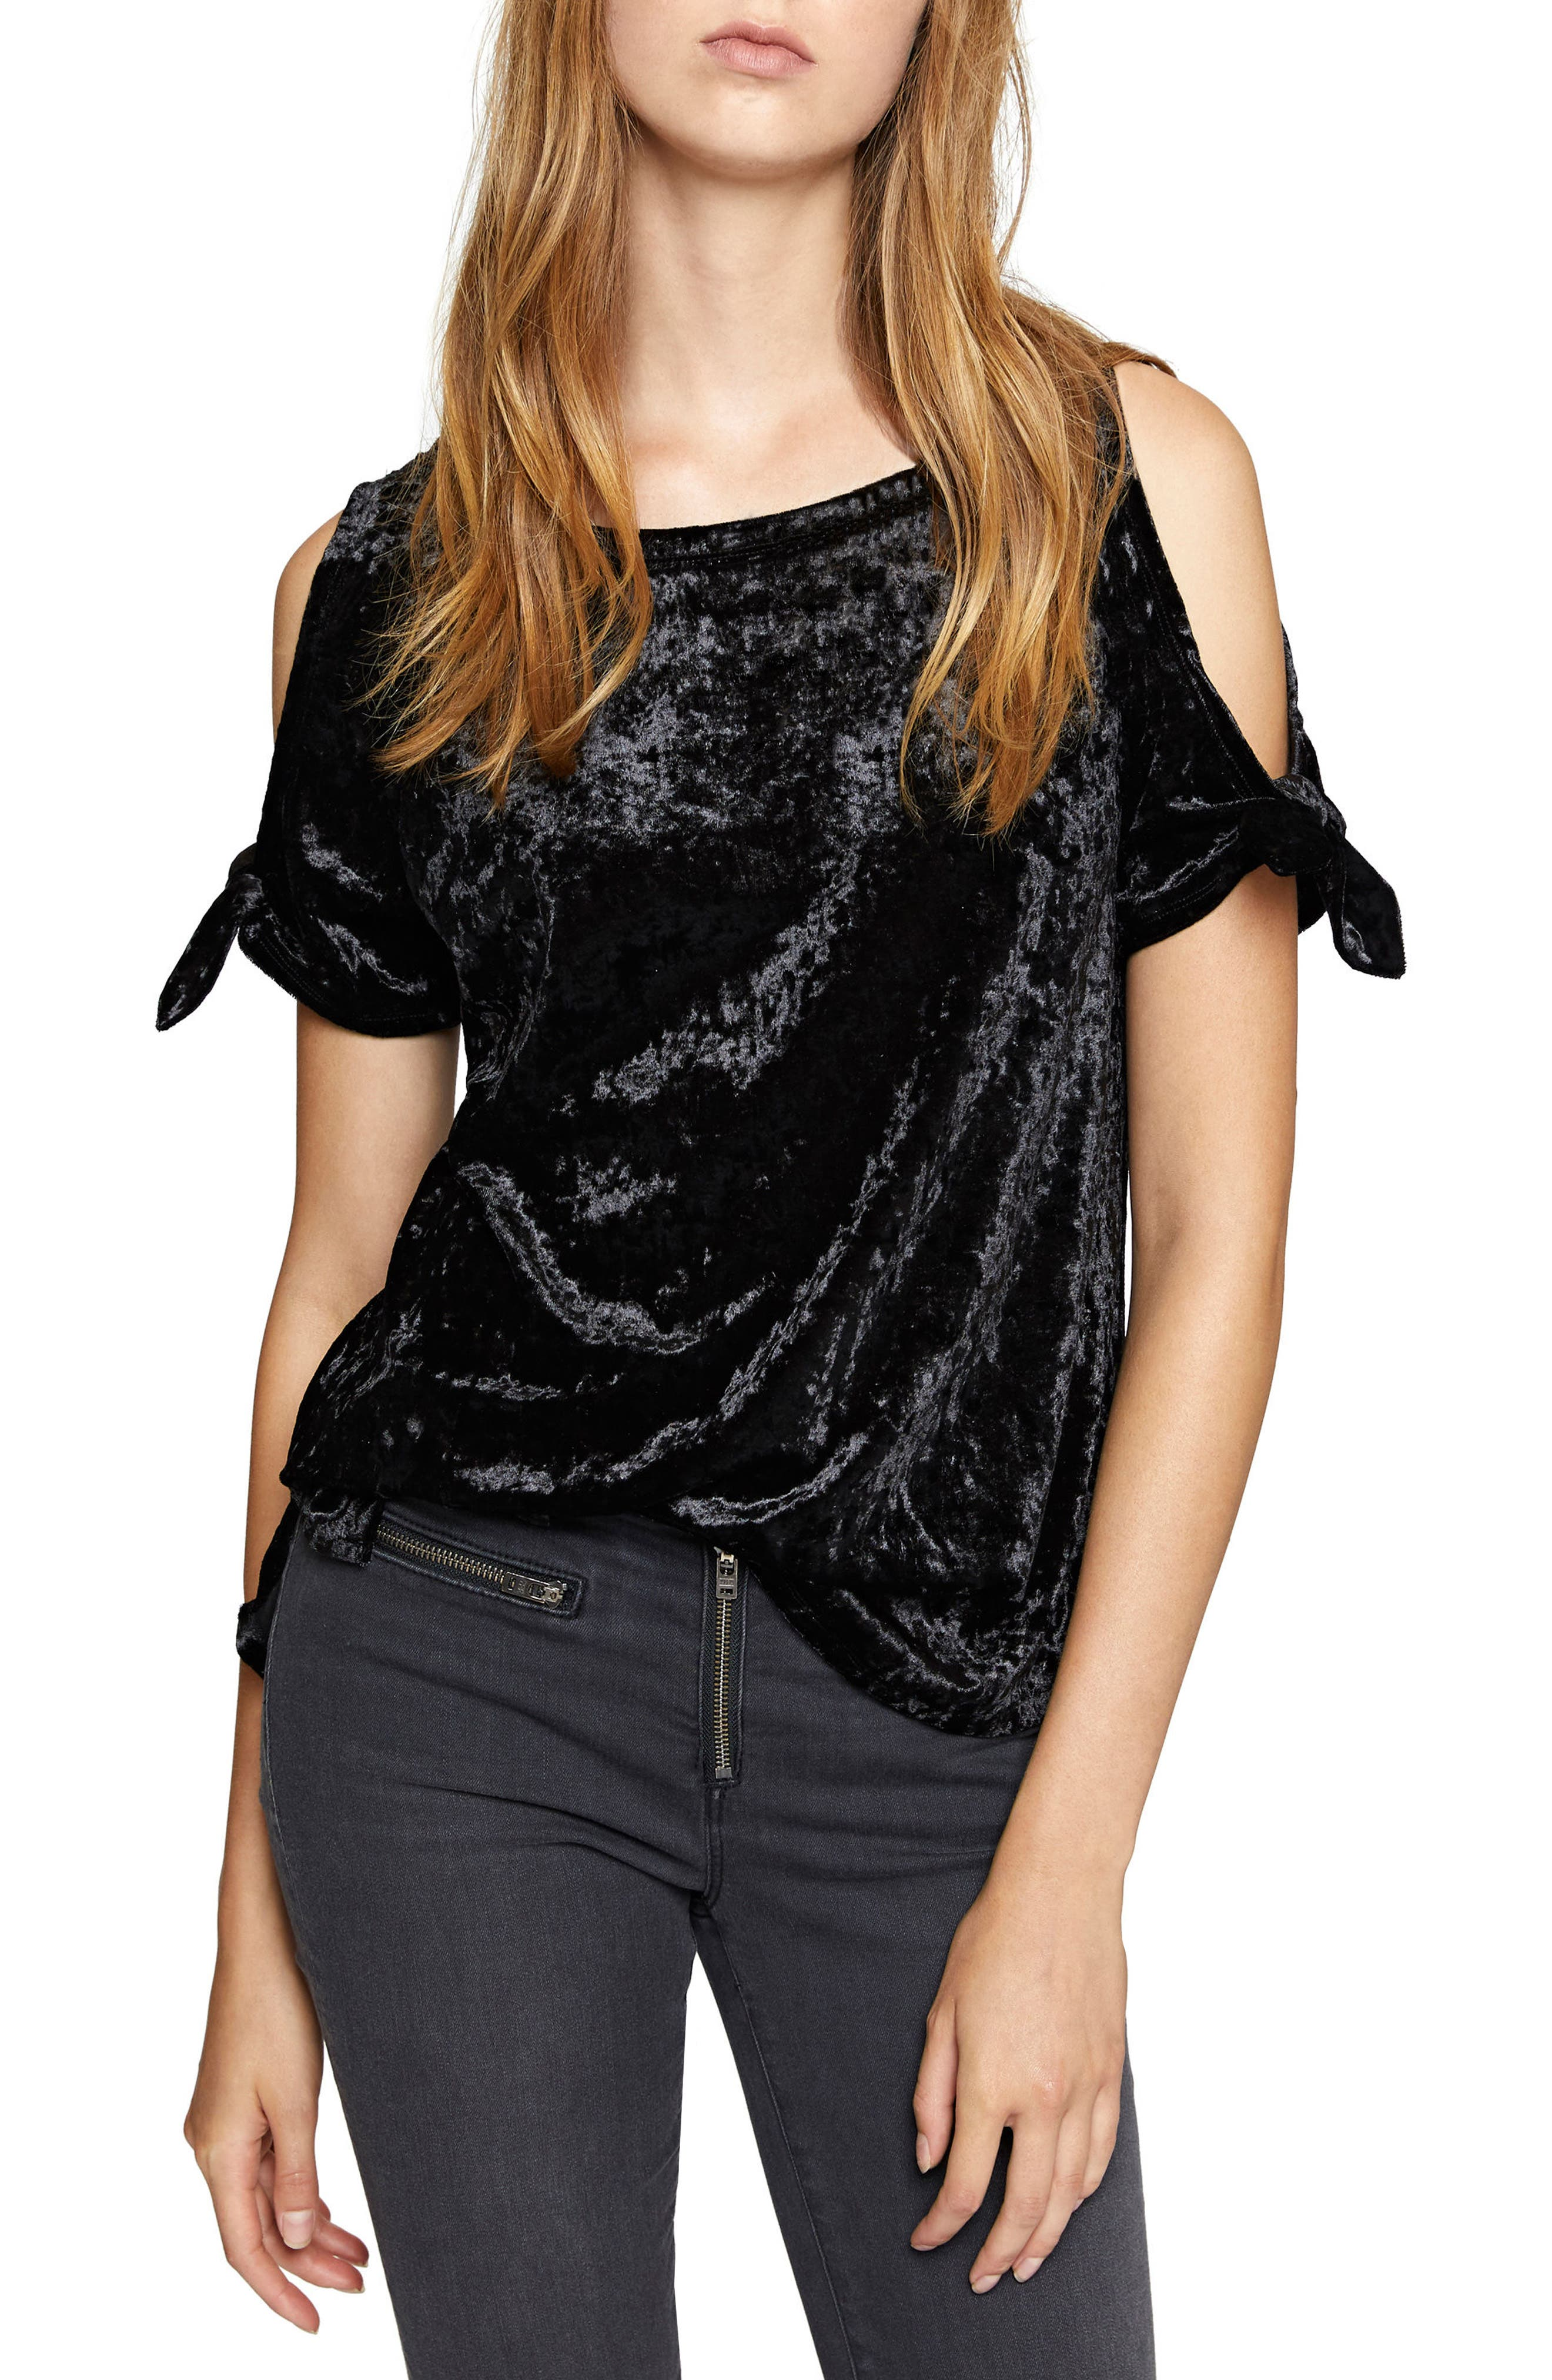 Alternate Image 1 Selected - Sanctuary Lou Crushed Velvet Top (Regular & Petite)